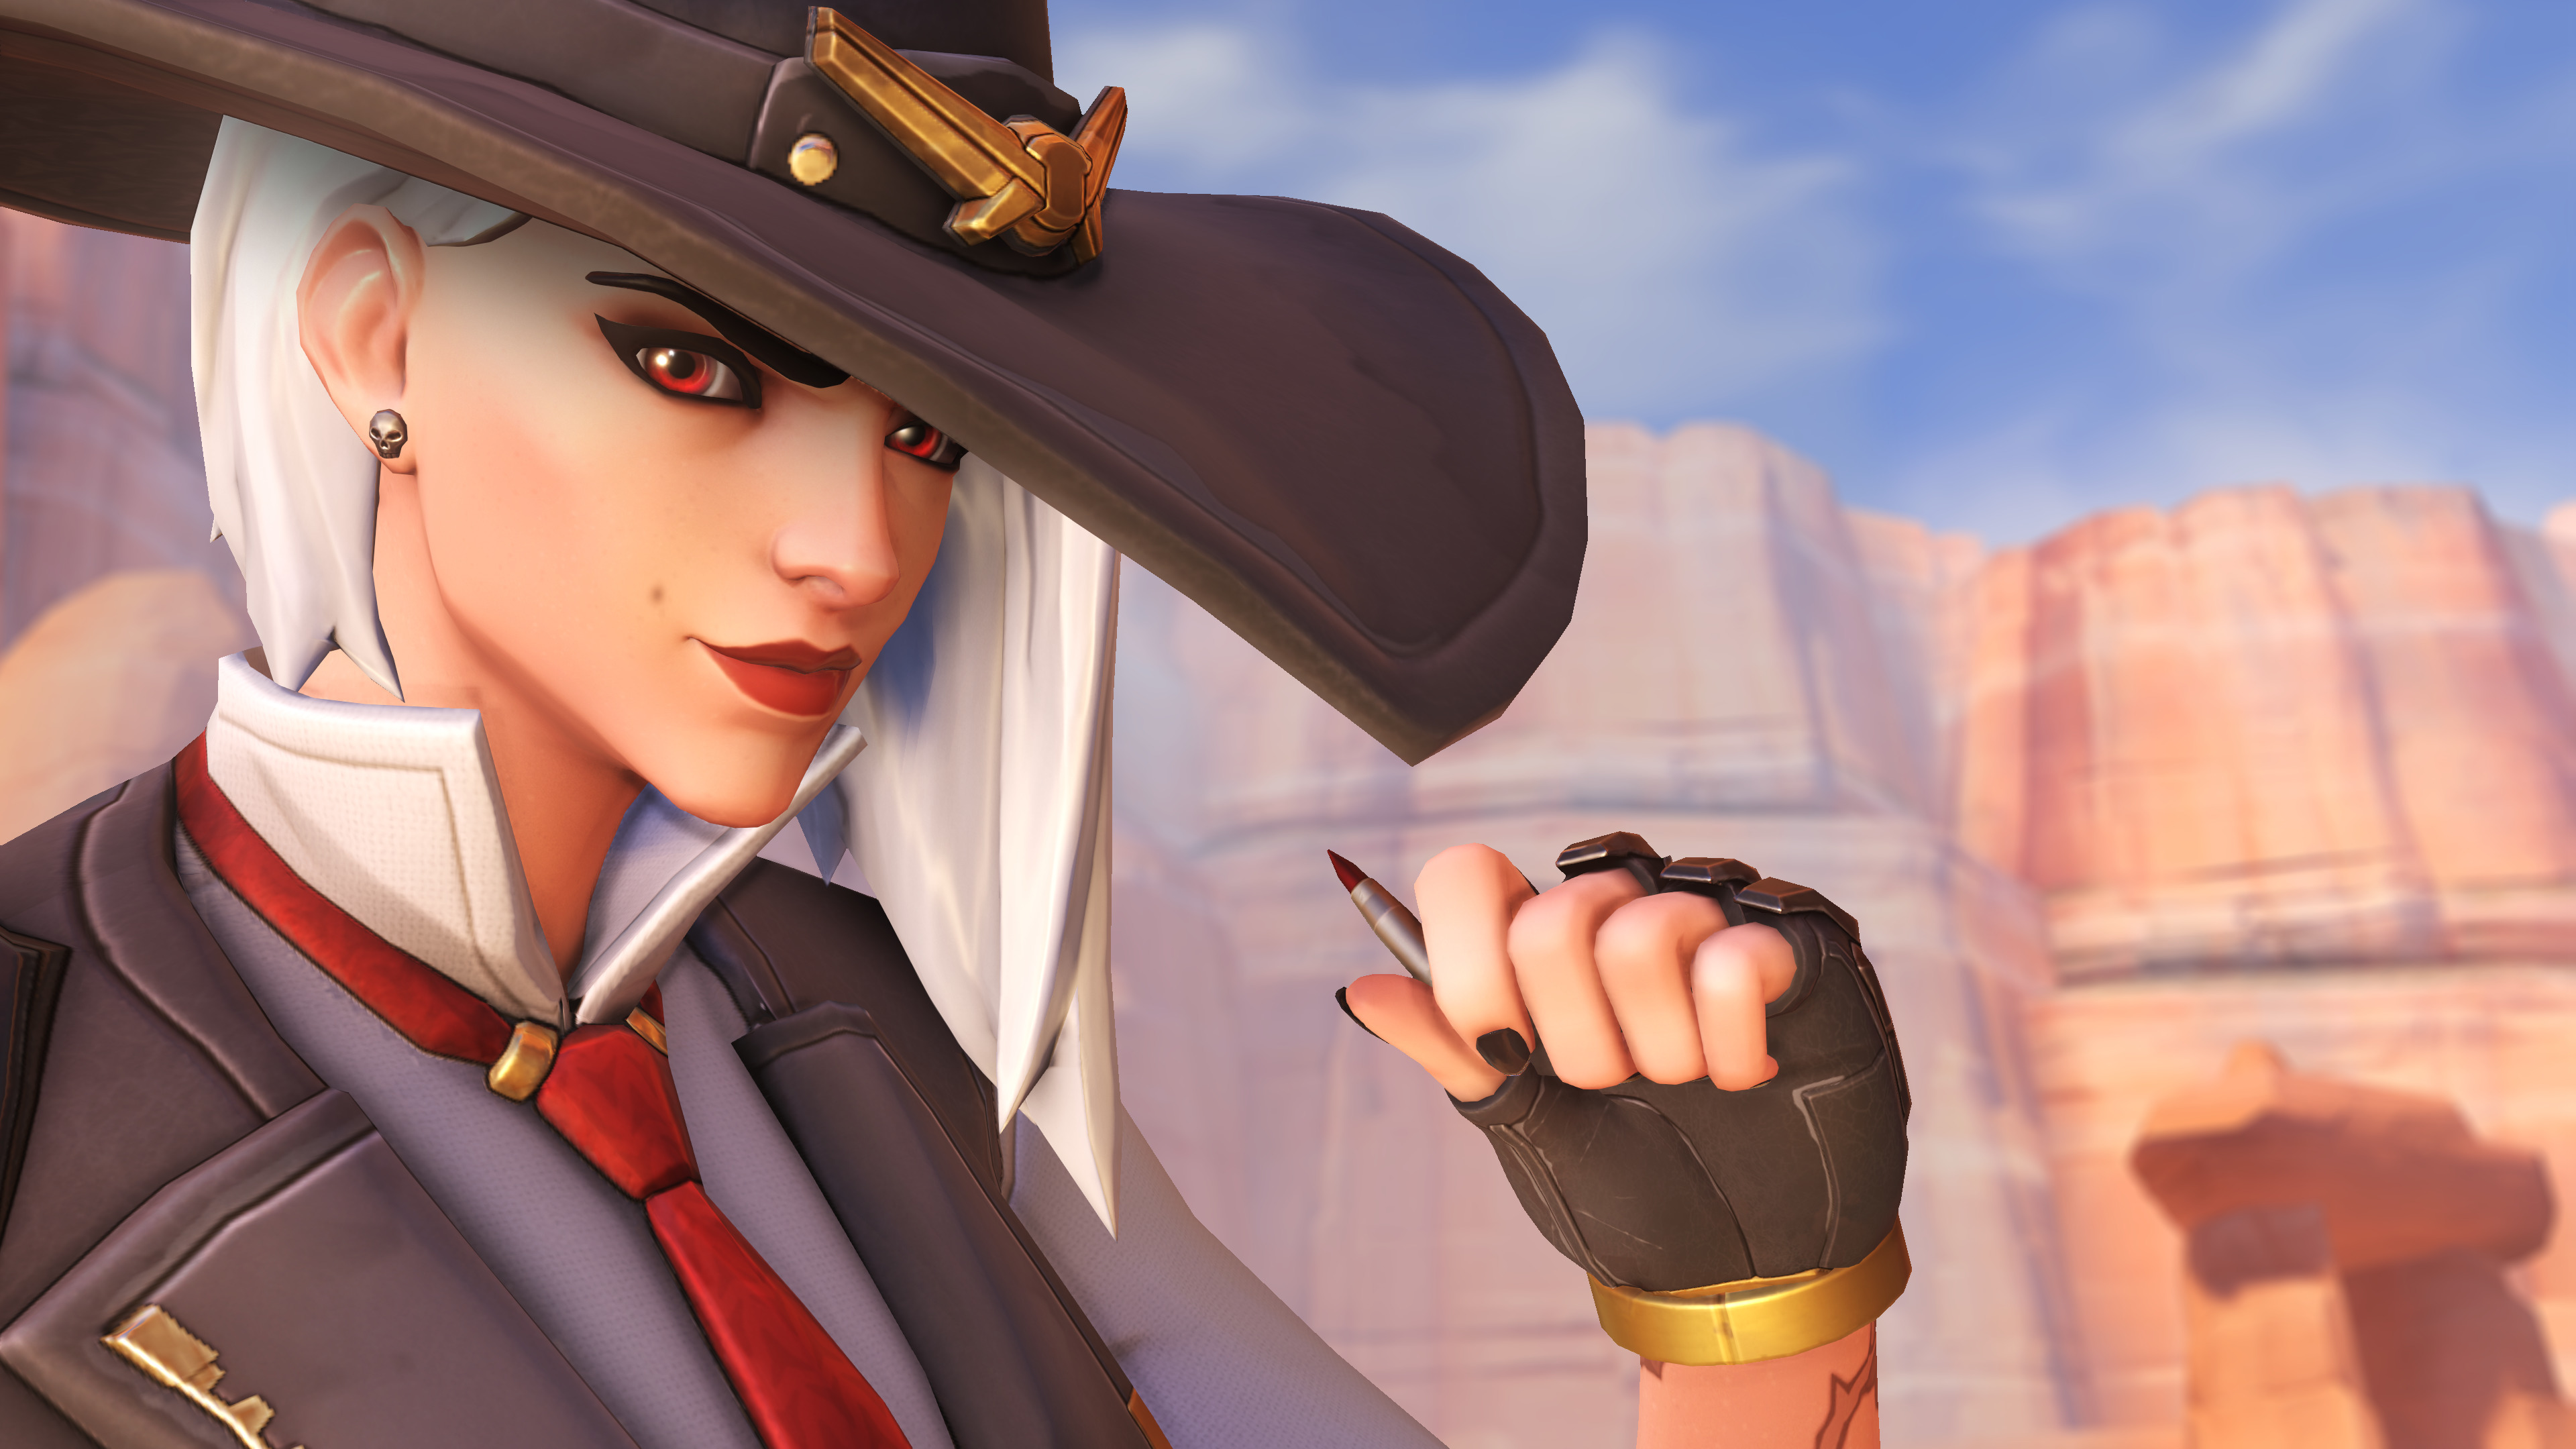 Ashe Overwatch 4k, HD Games, 4k Wallpapers, Images ...